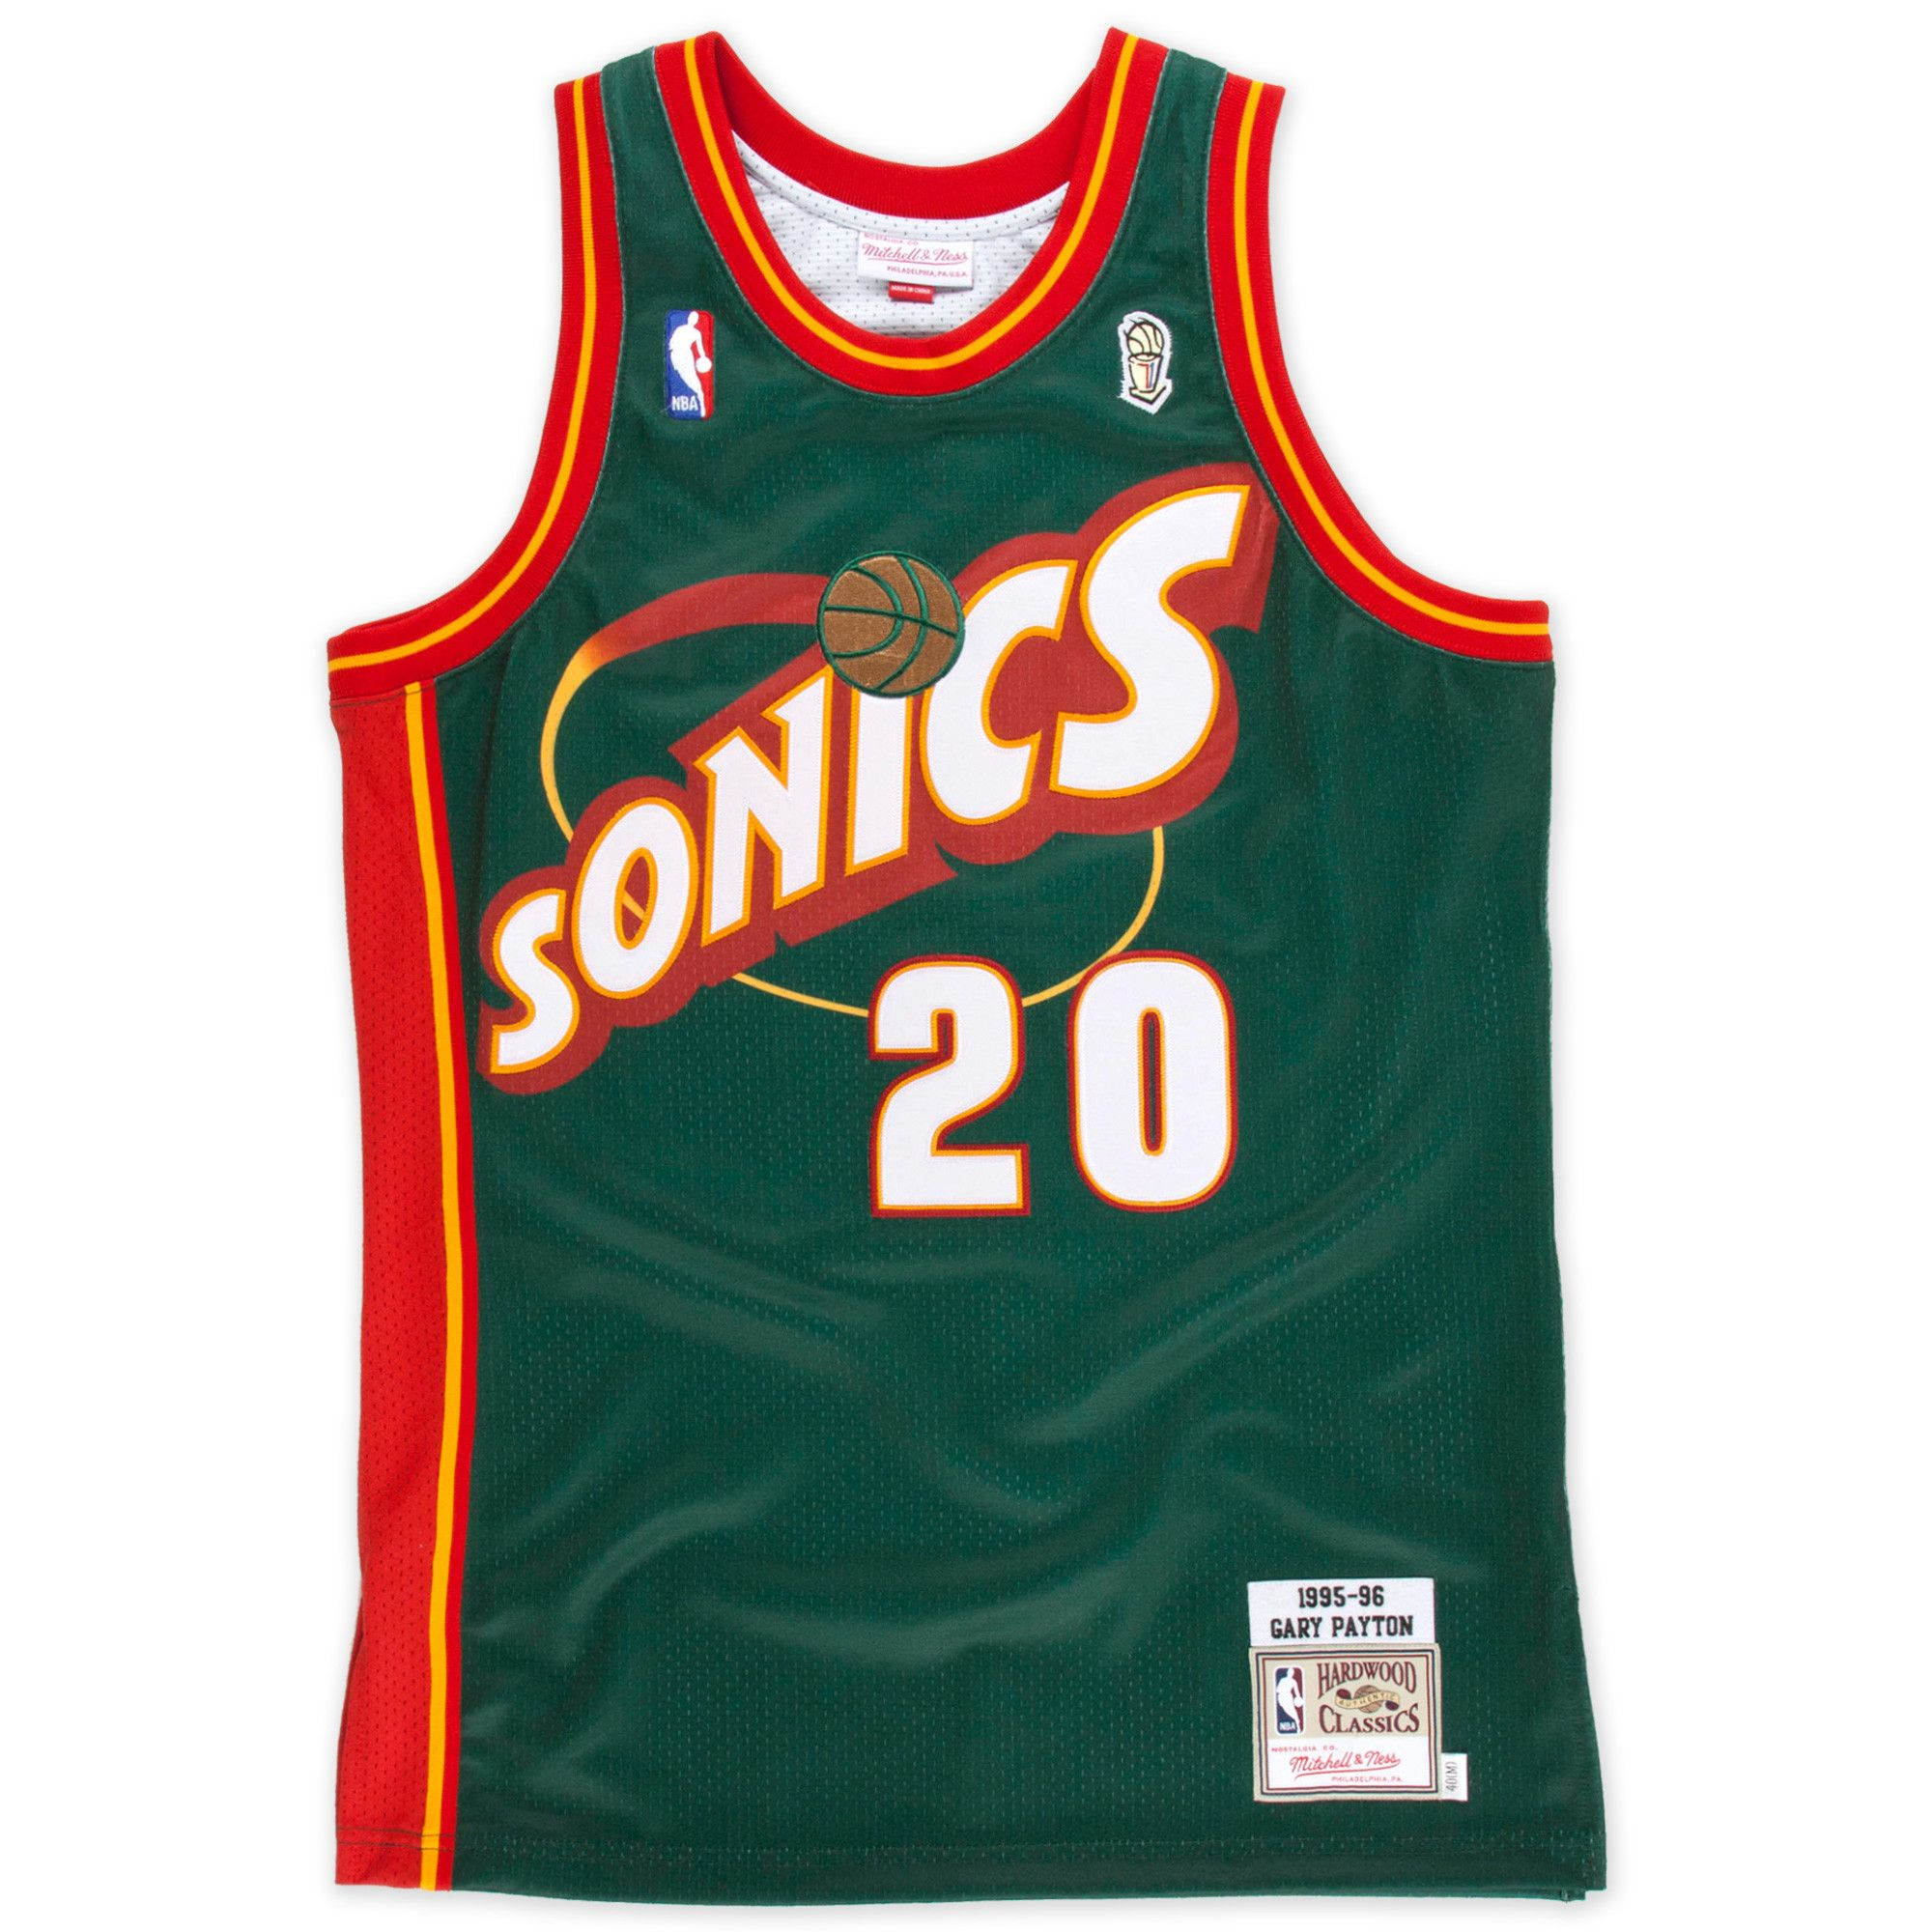 Gary Payton 1995-96 Authentic Jersey Seattle SuperSonics - Shop Mitchell   Ness  NBA Authentic Jerseys and Replicas 7f8113d57